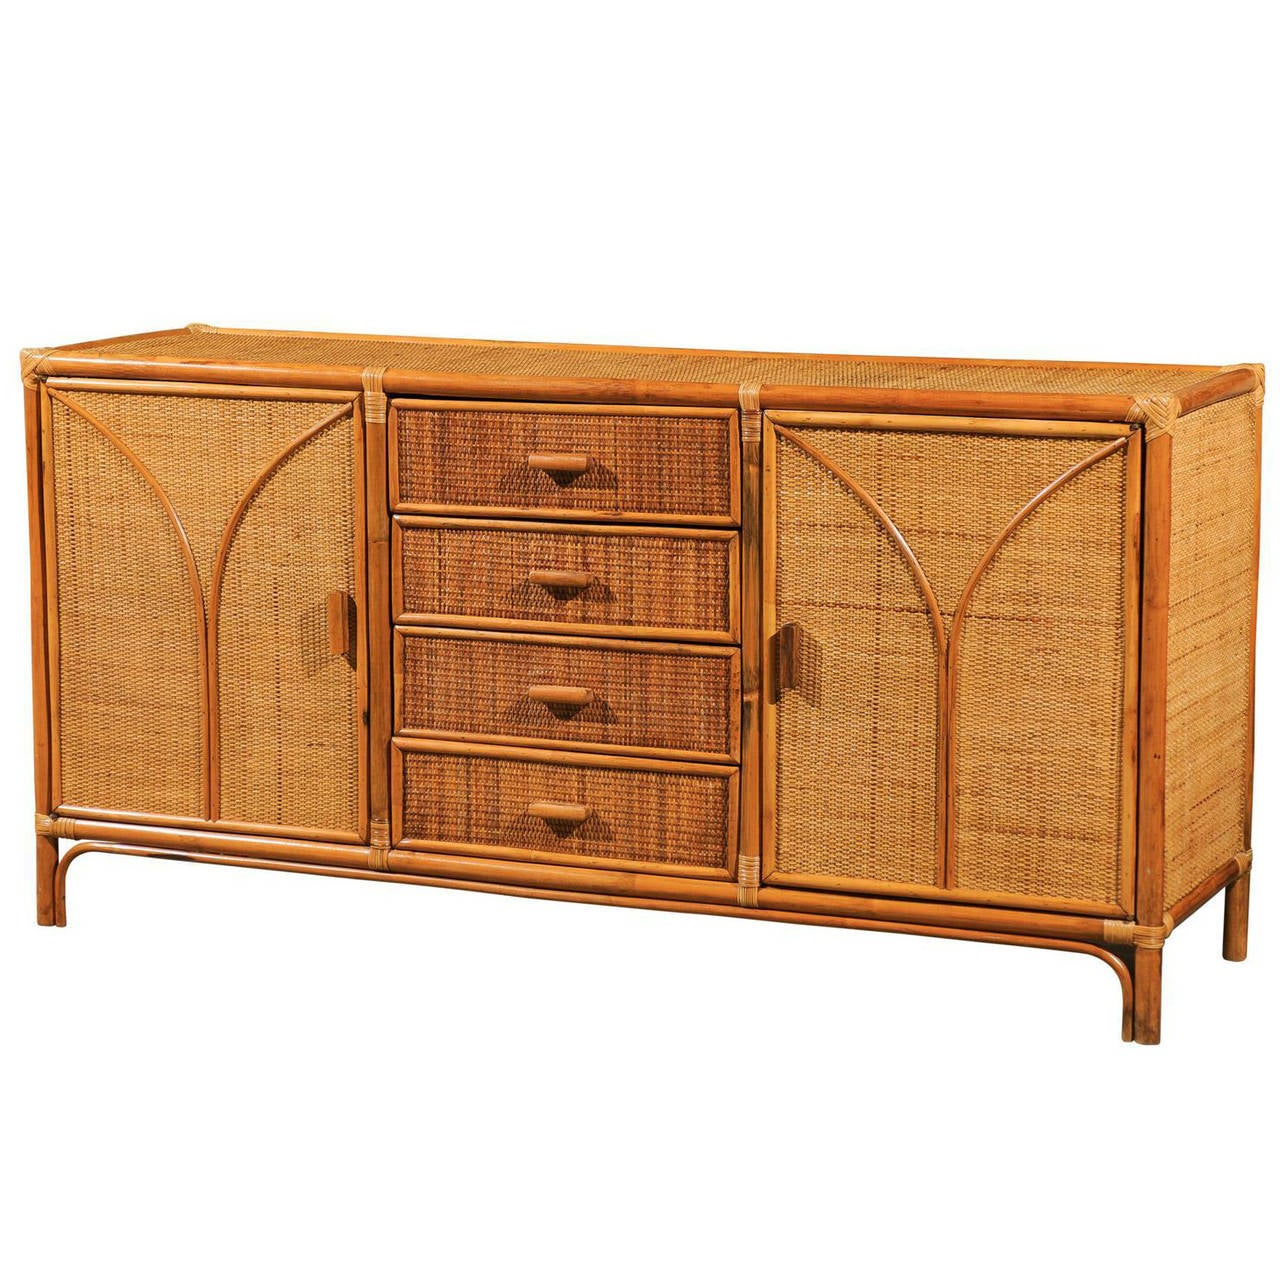 Vintage rattan and raffia cabinet or buffet at 1stdibs for Sideboard rattan